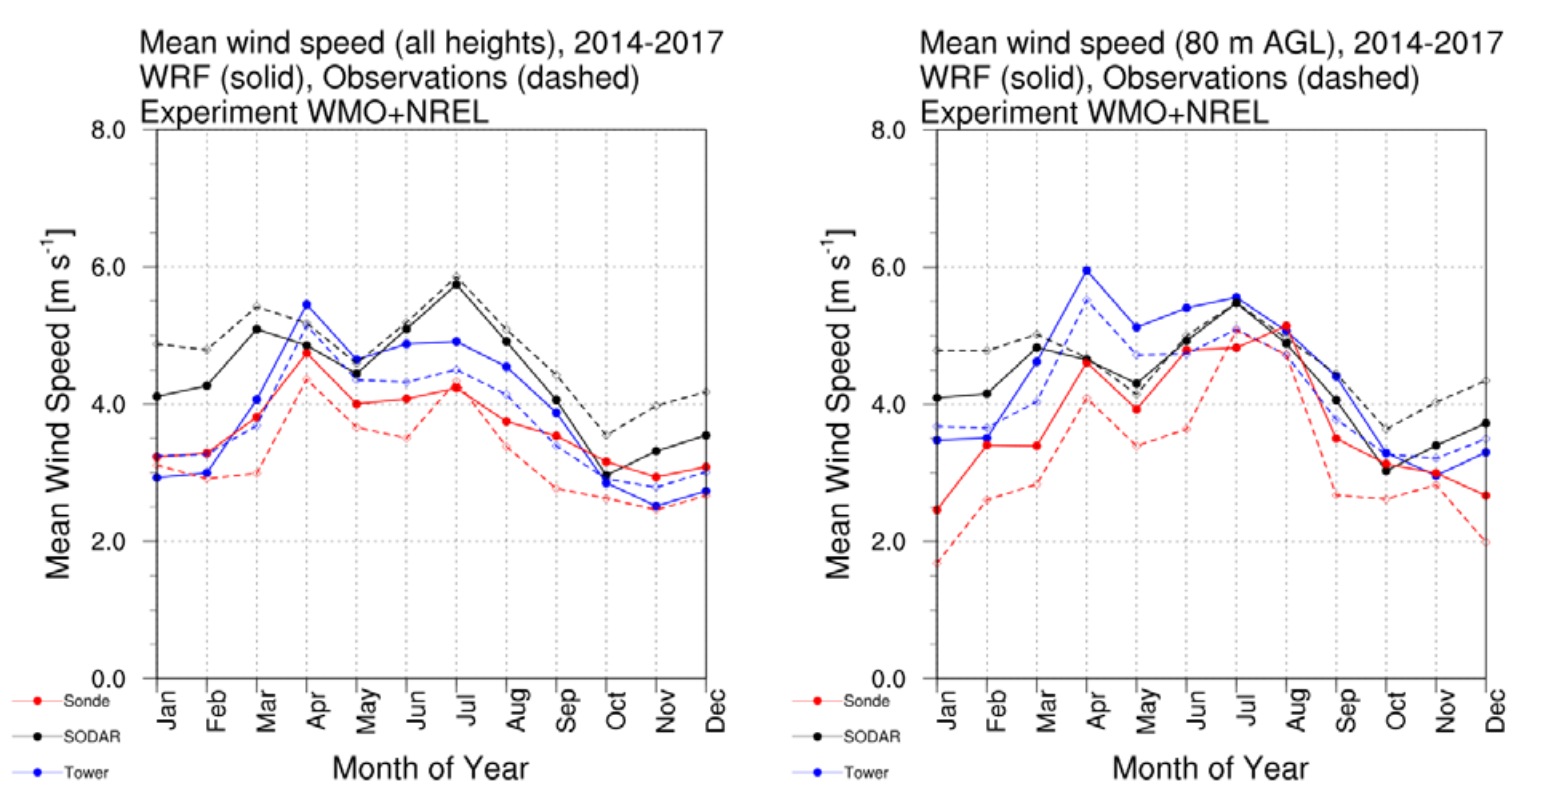 Mean wind speed data from Bangladesh study